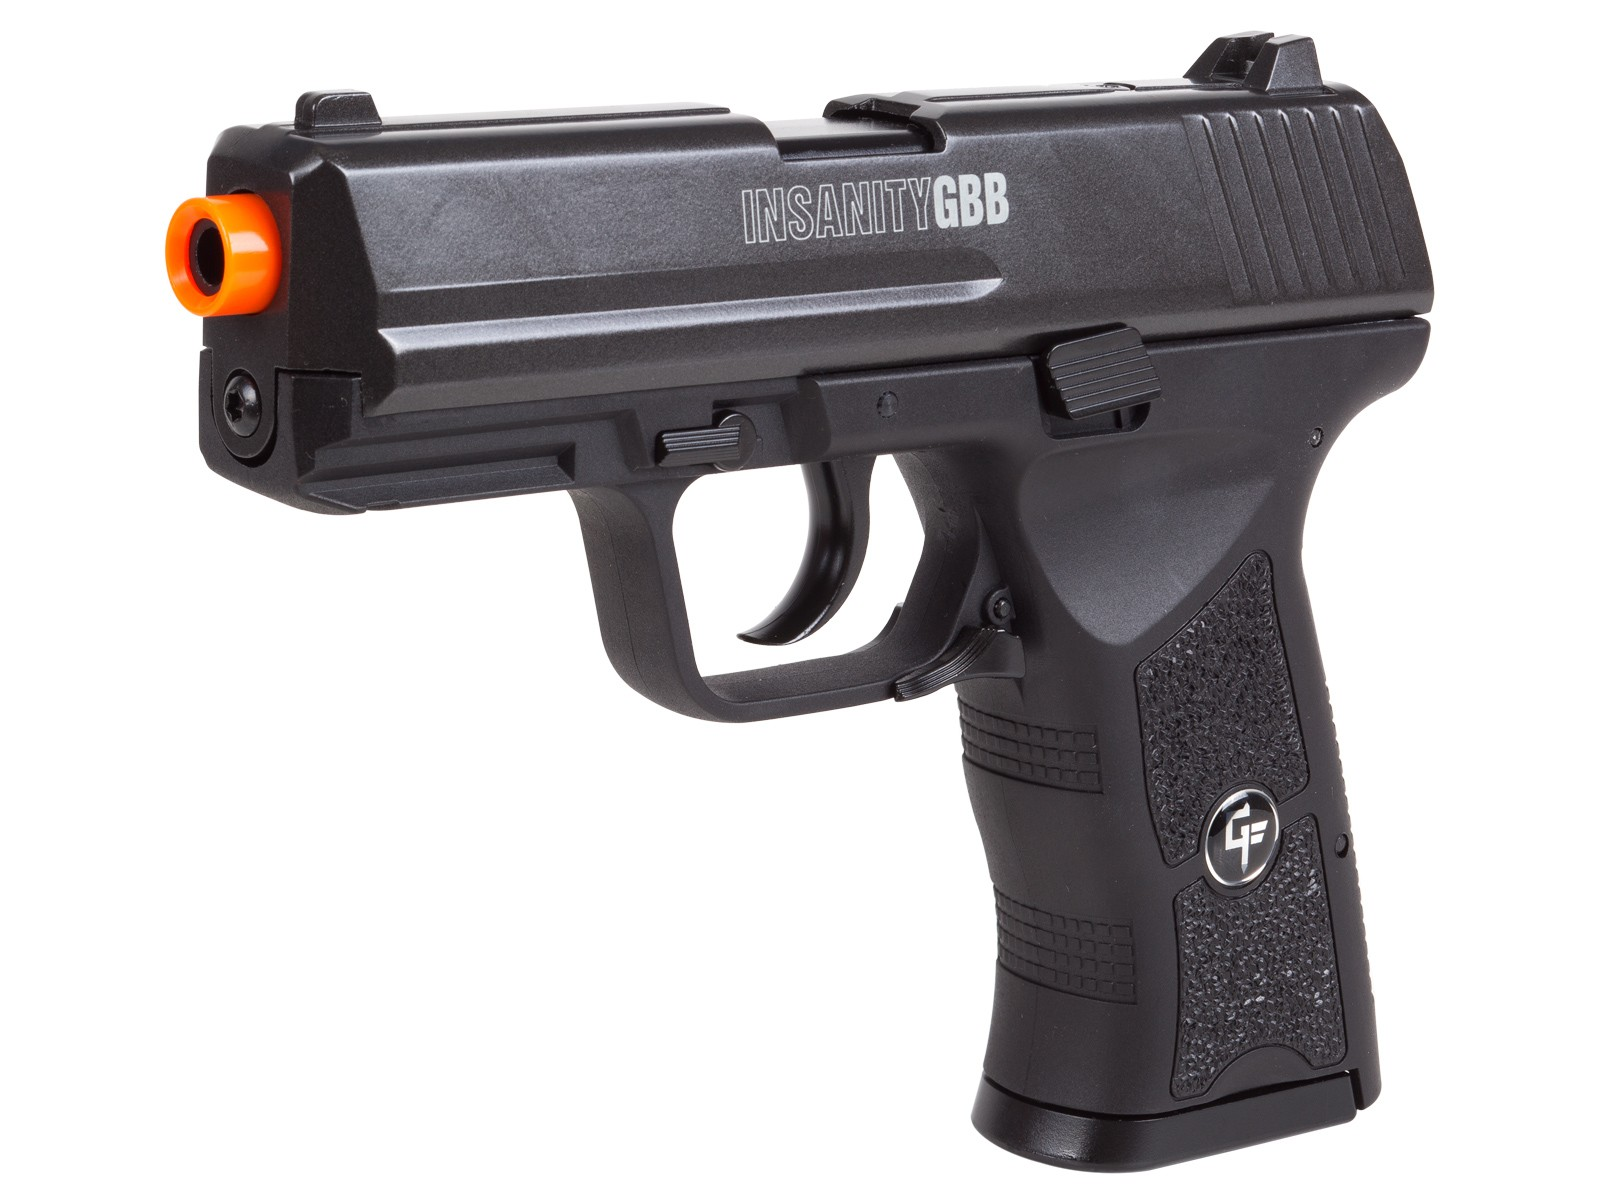 GameFace_Insanity_GBB_CO2_Airsoft_Pistol_6mm